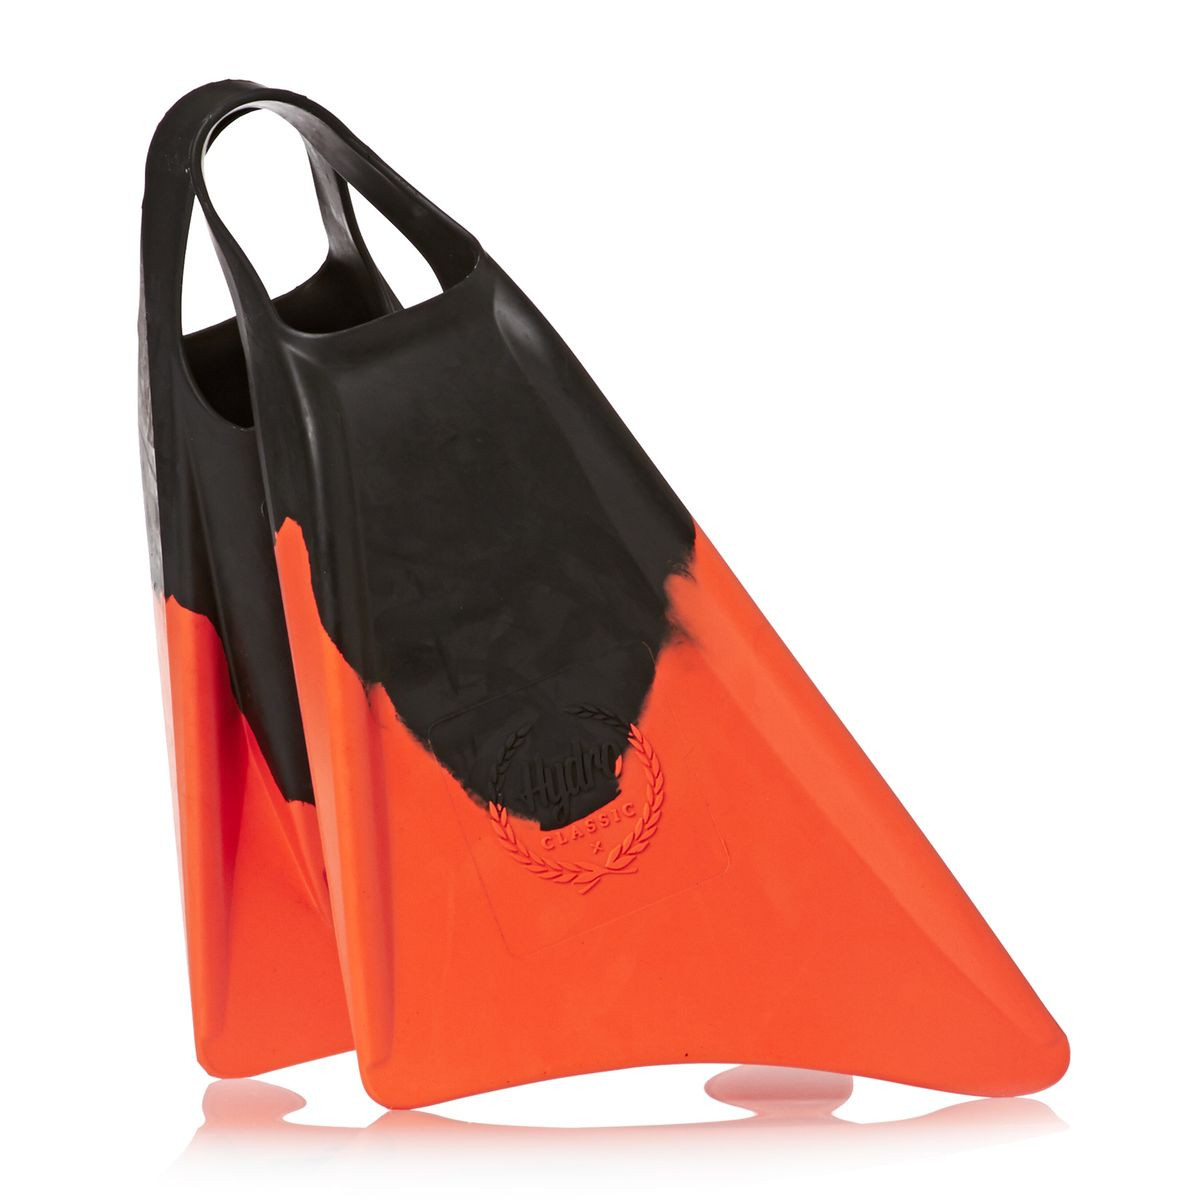 Hydro Classic Bodyboard Fins - Black/ Orange